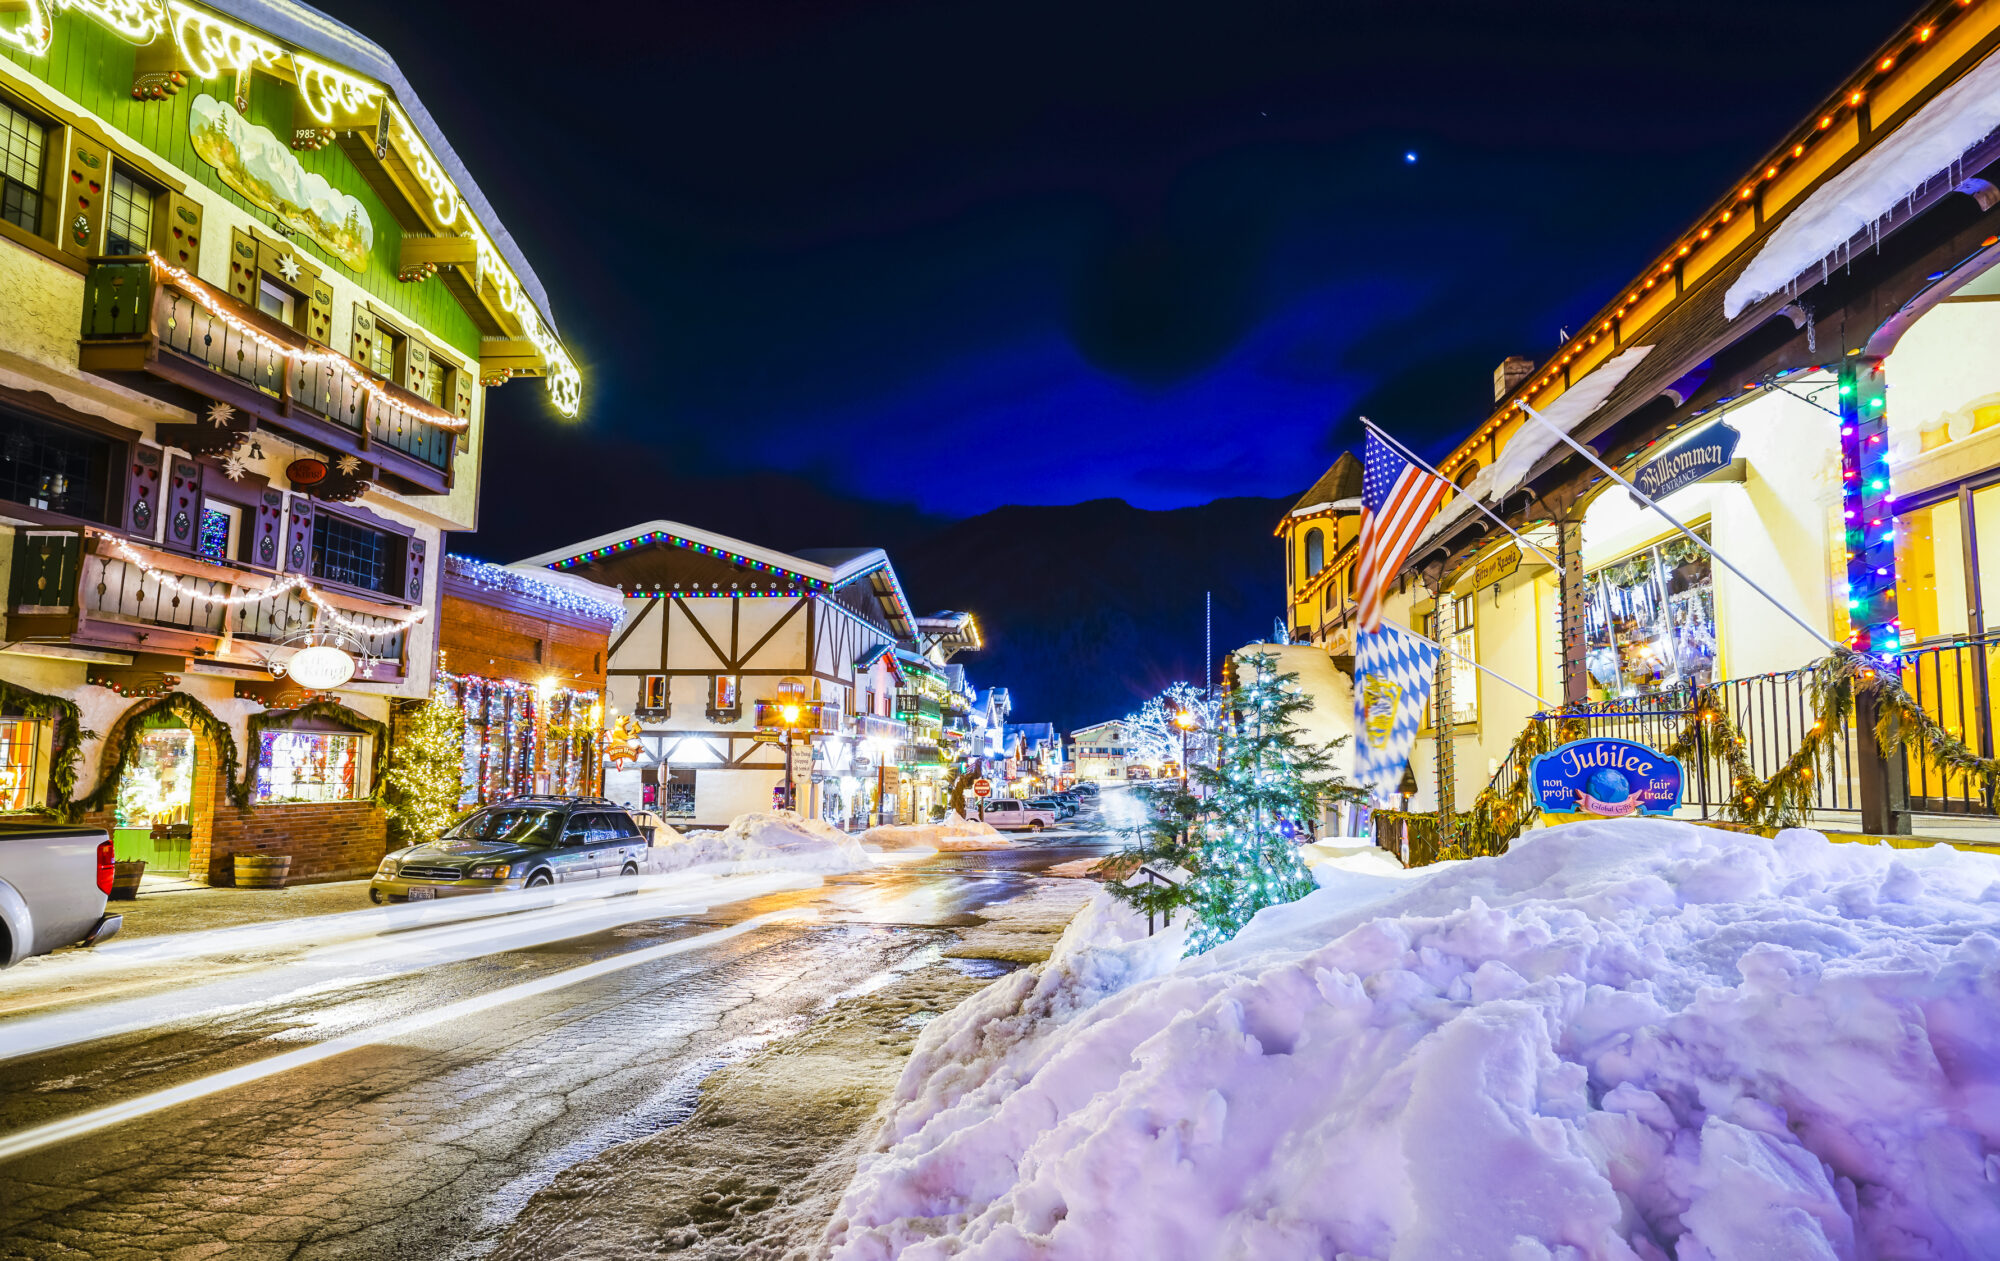 picturesque town in winter decorated for Christmas